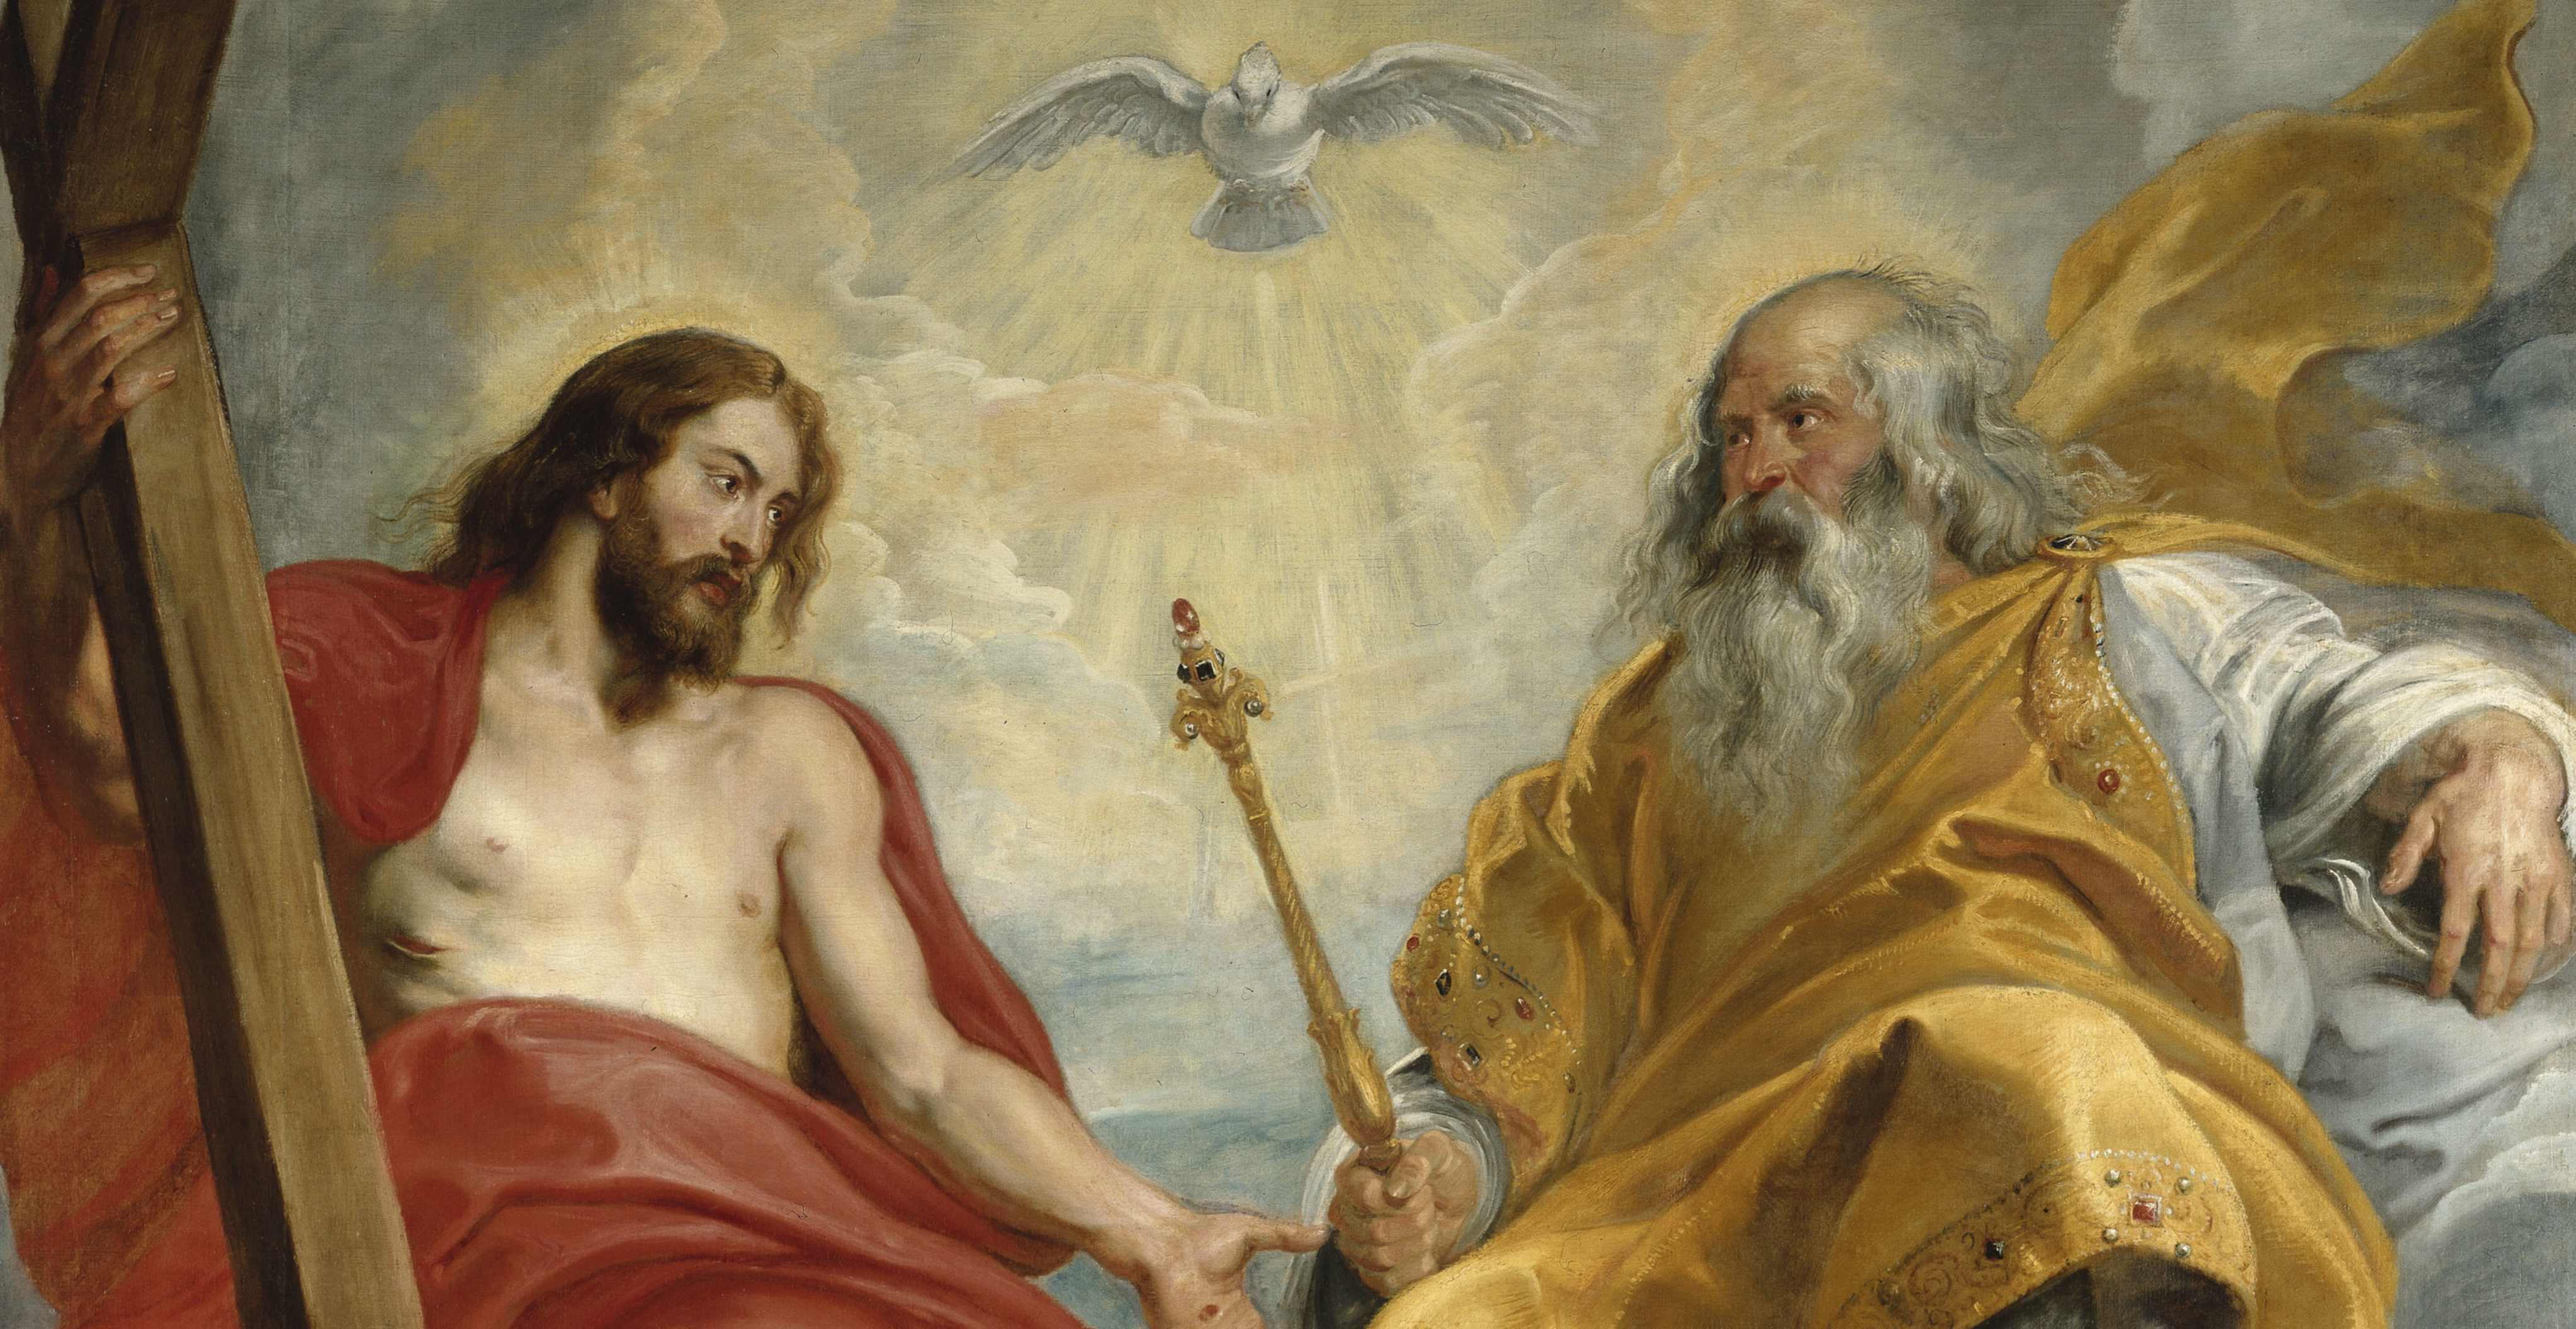 The Holy Trinity by Peter Paul Rubens